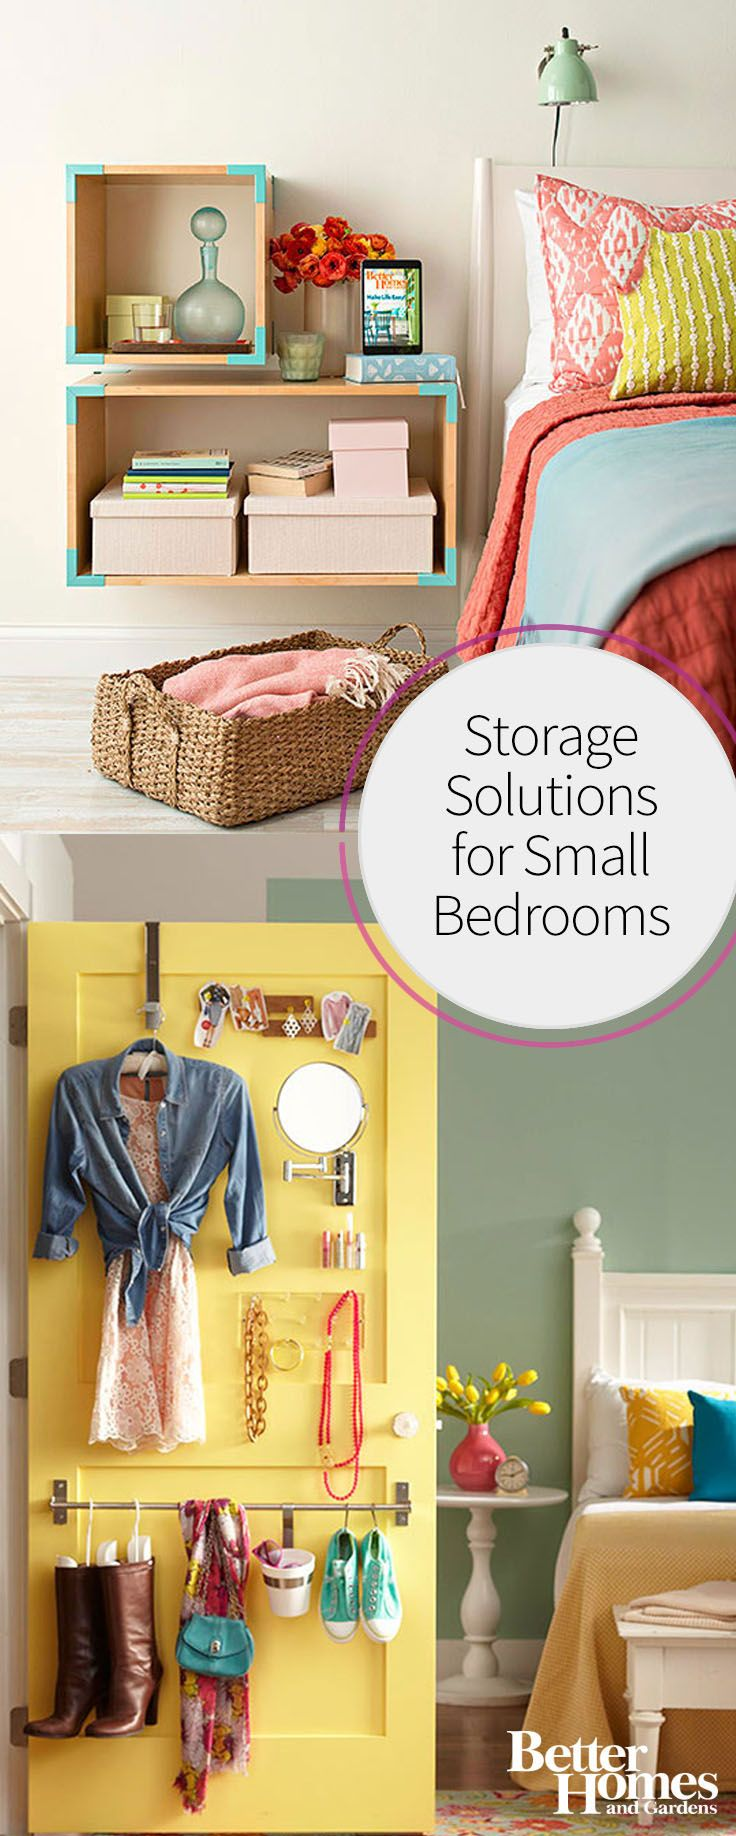 Storage Solutions for Small Bedrooms Tiny closet, Smart